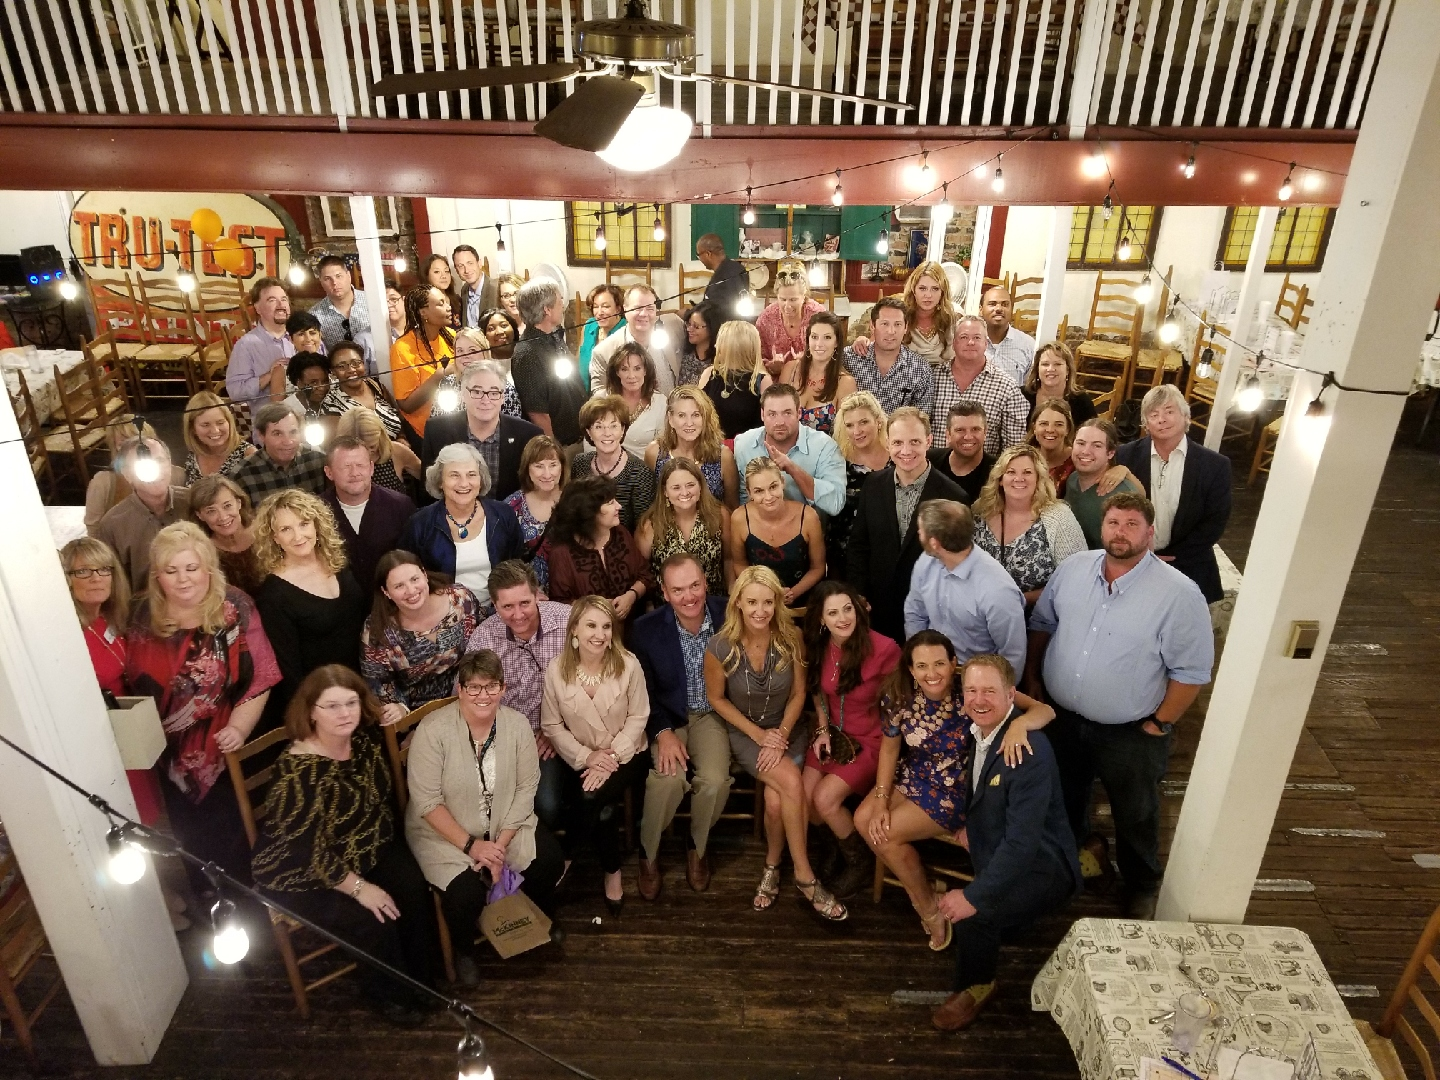 5th Annual Builders of Justice McKinney Progressive Dinner, Legal Aid of NorthWest Texas, downtown mckinney